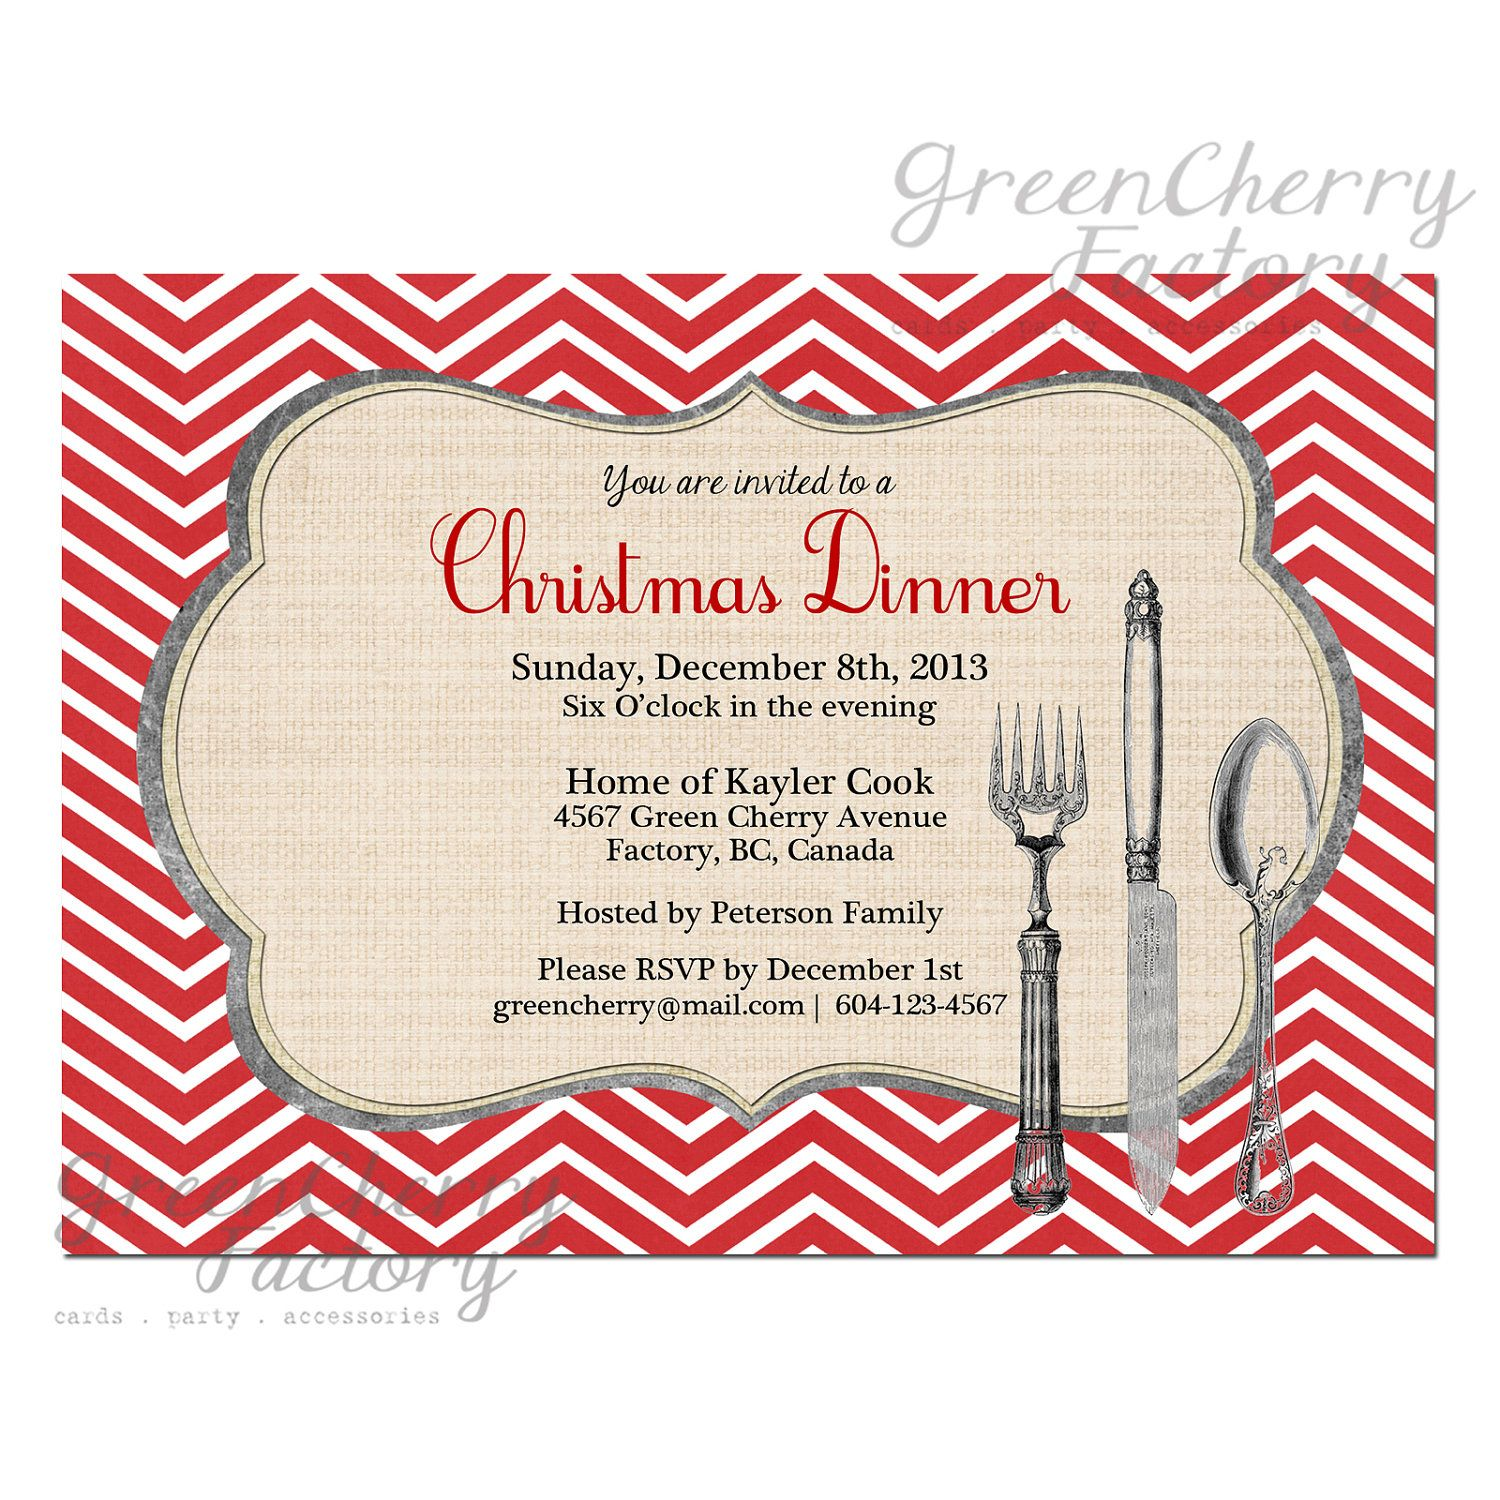 Christmas party dinner invitation red chevron background christmas party dinner invitation red chevron background printable invitation no161 1500 stopboris Gallery